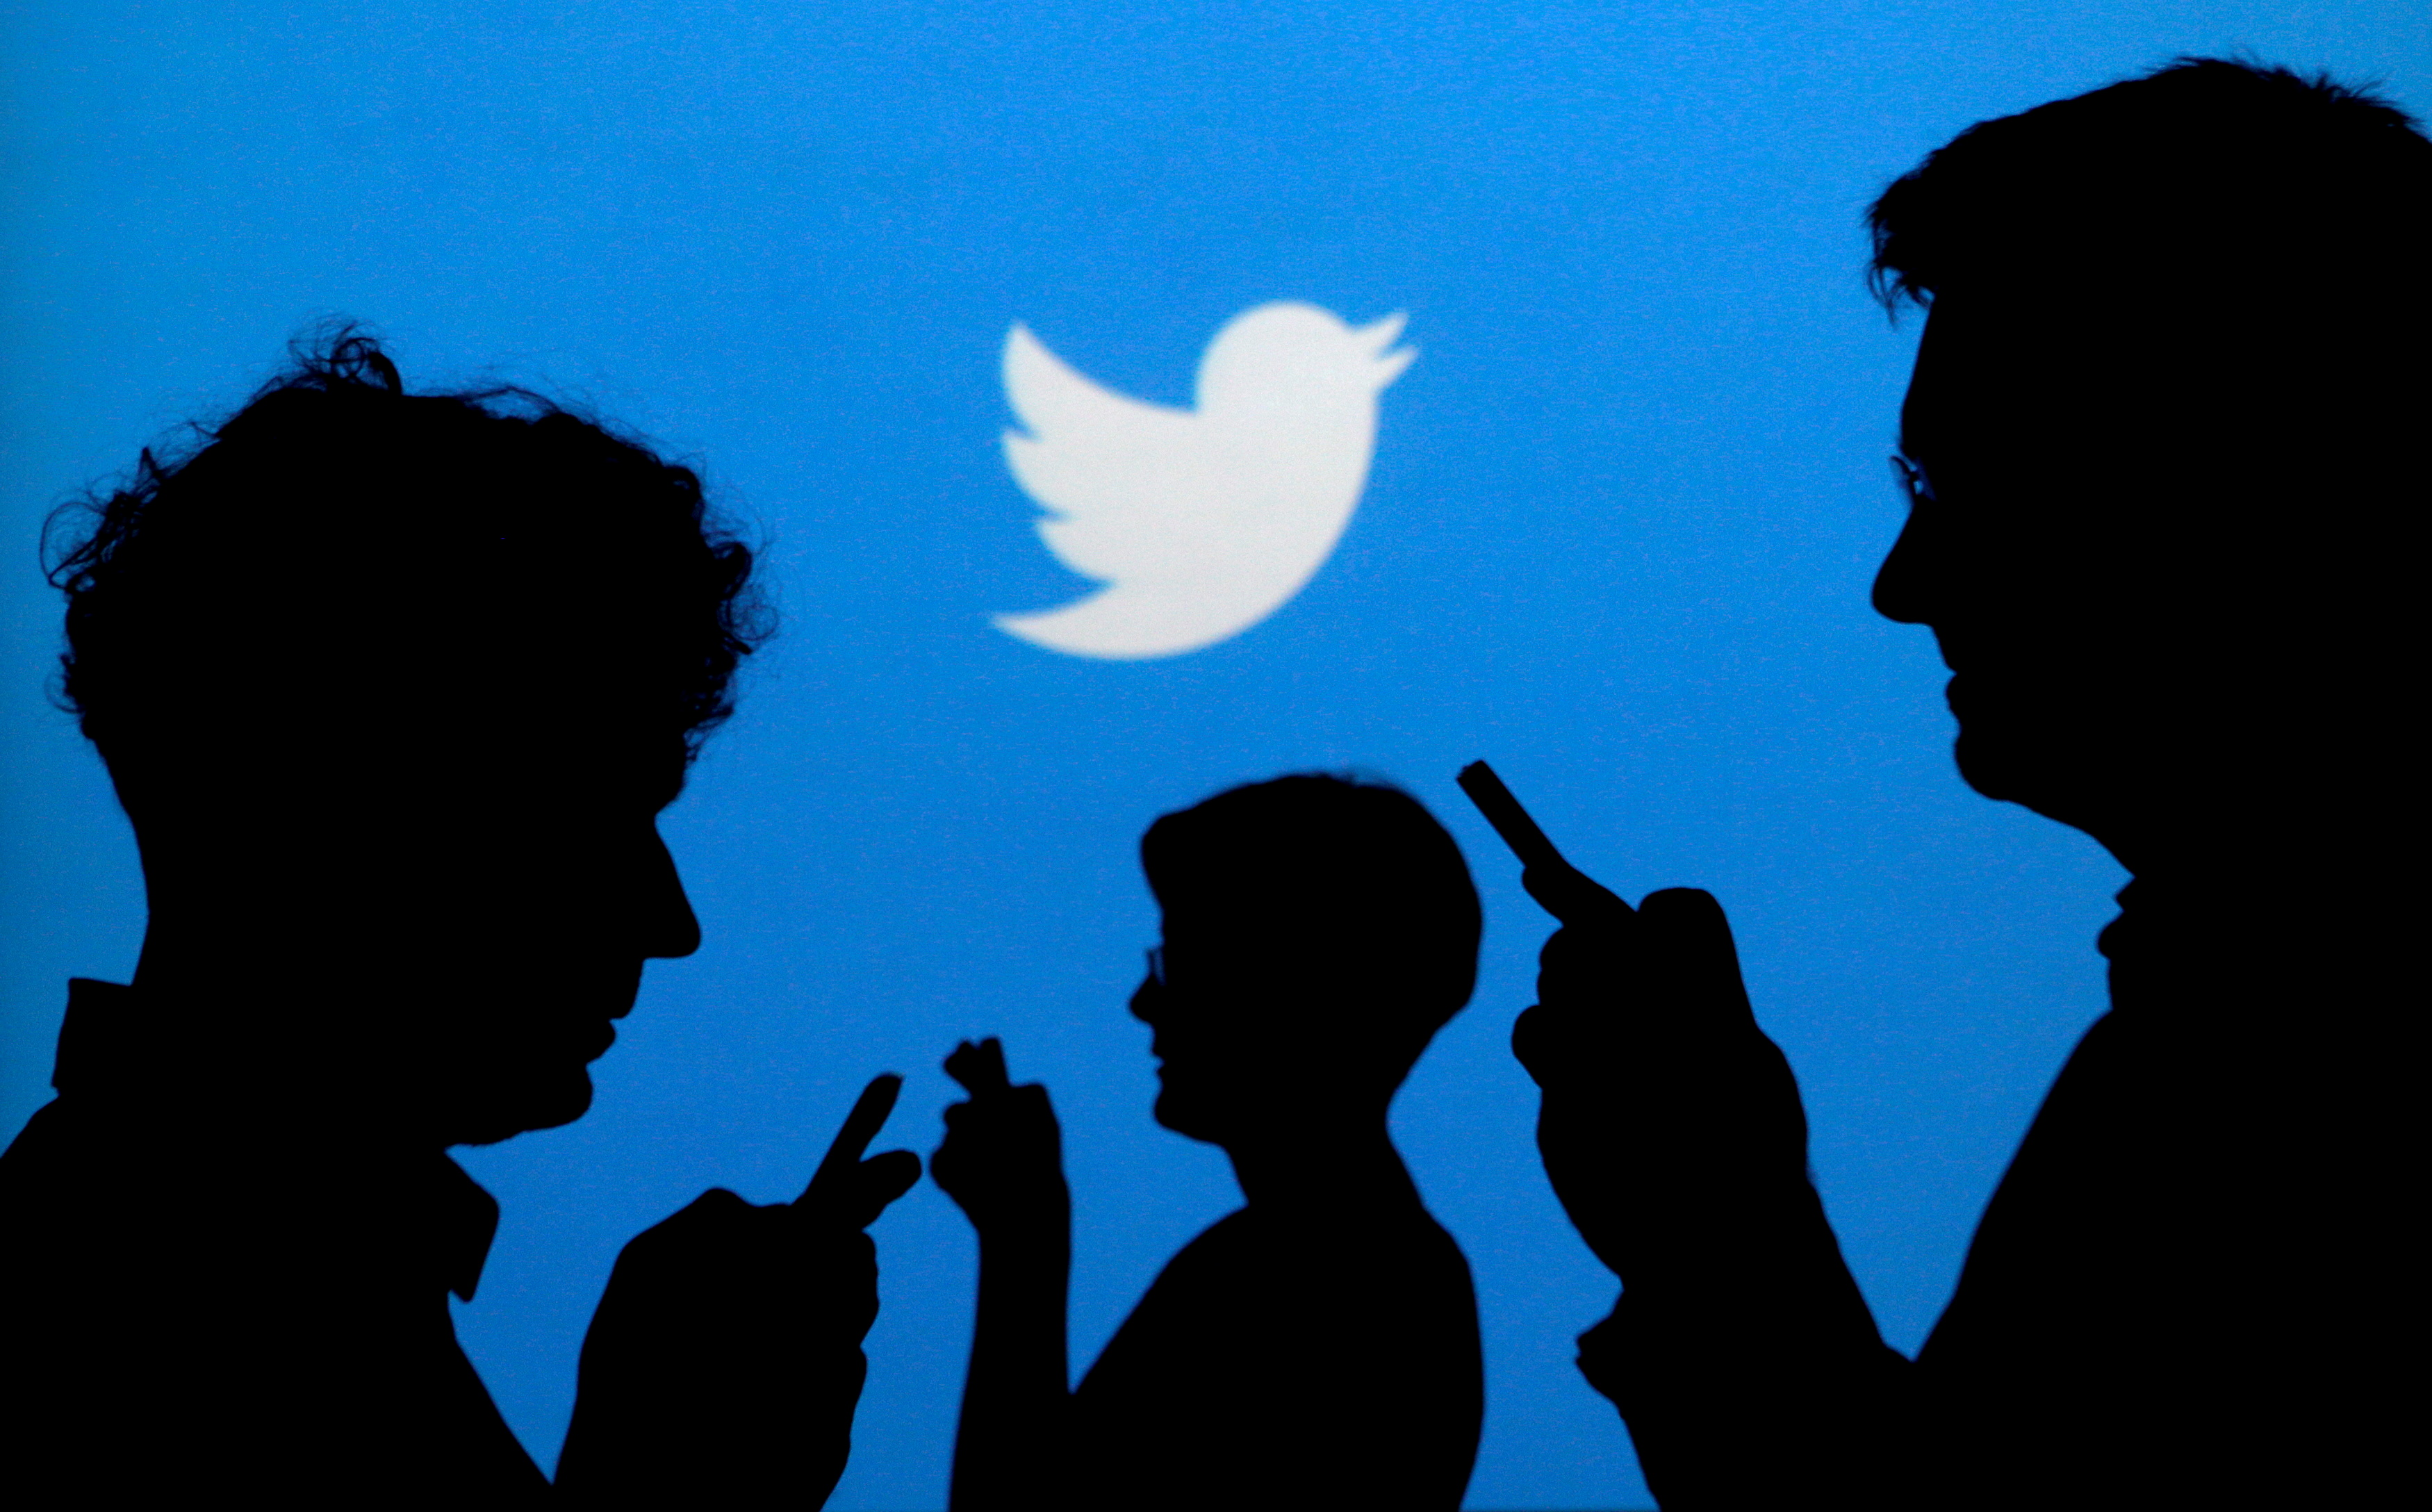 People holding mobile phones are silhouetted against a backdrop projected with the Twitter logo in this illustration. REUTERS/Kacper Pempel/Illustration